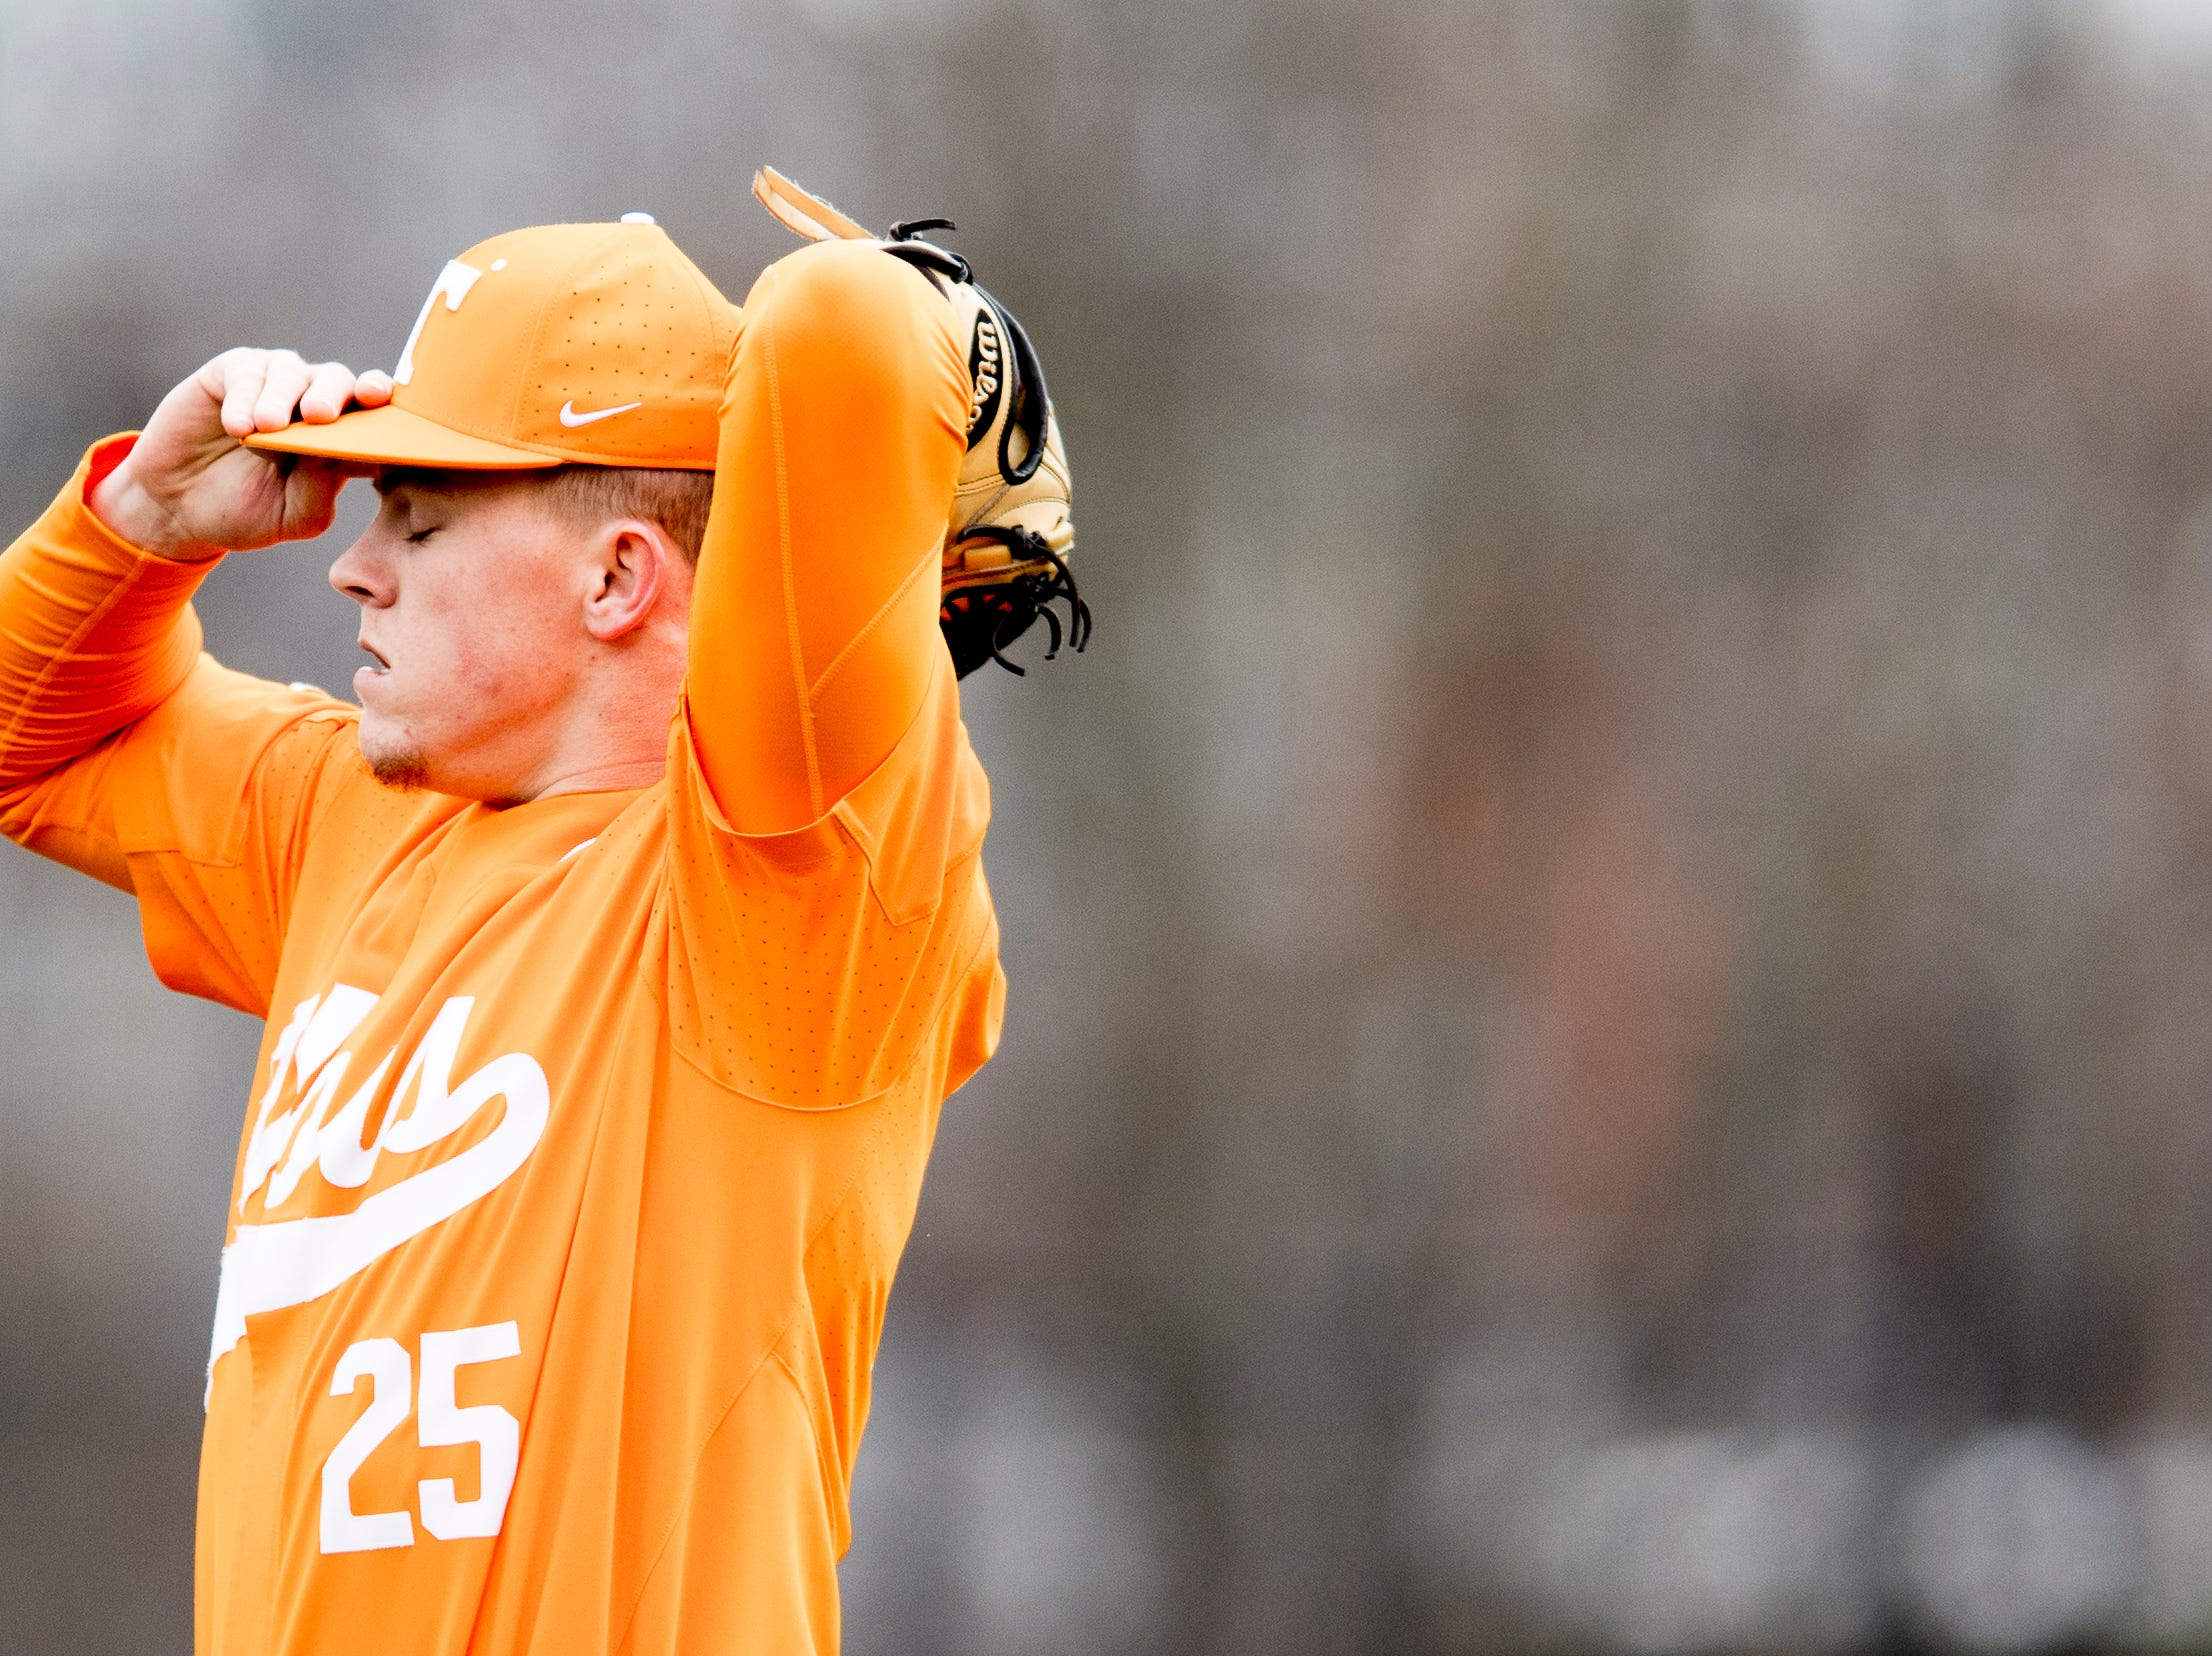 Tennessee pitcher Zach Linginfelter (25) prepares to pitch during a Tennessee baseball home opener game against Appalachian State at Lindsey Nelson Stadium in Knoxville, Tennessee on Saturday, February 16, 2019.